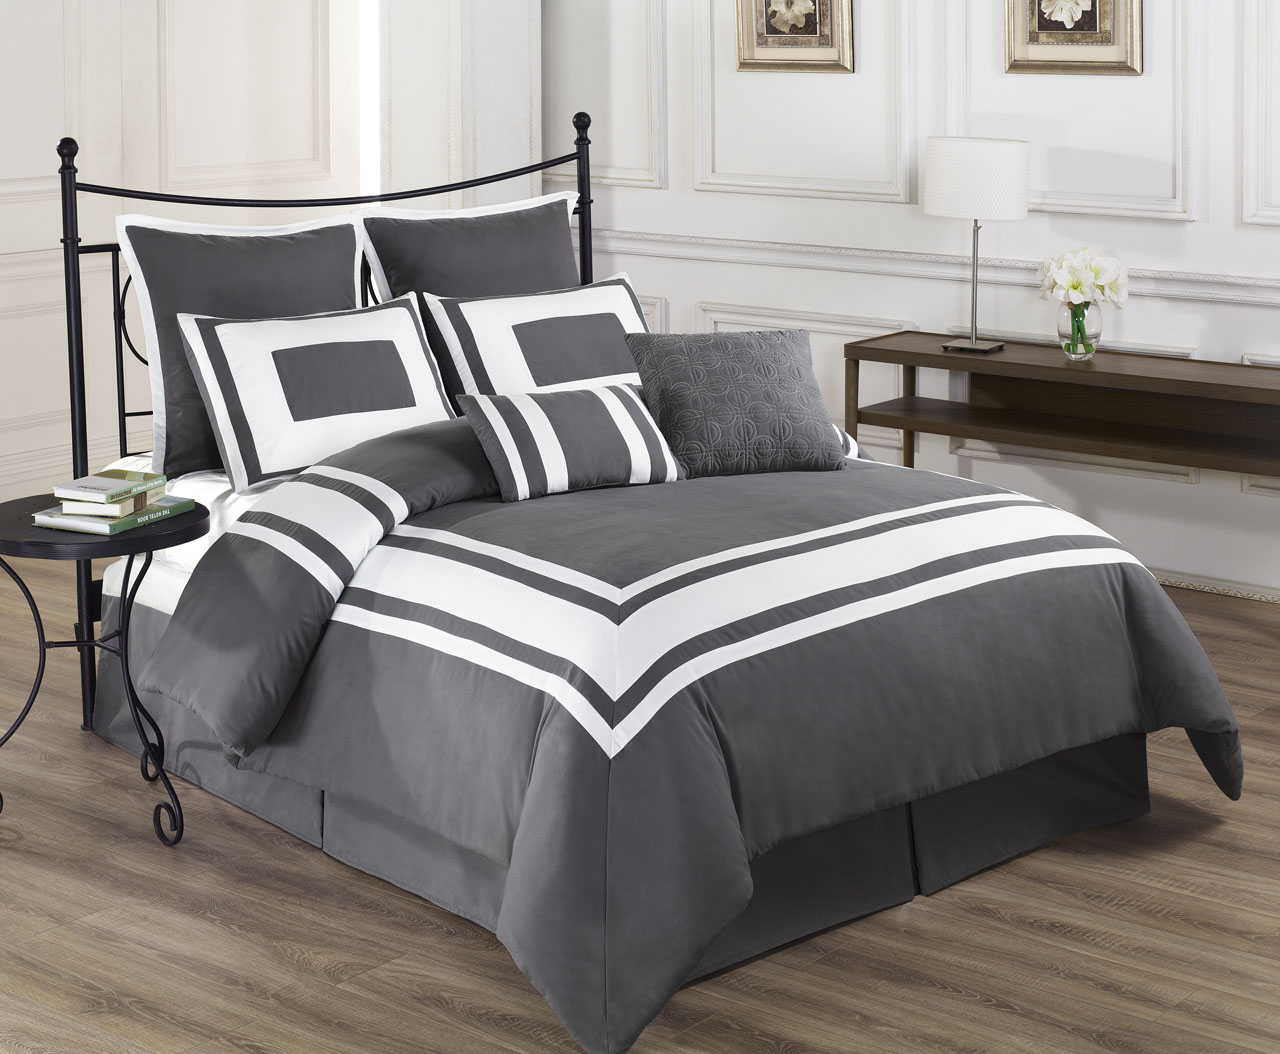 8 Piece Lux Décor Gray Comforter Set